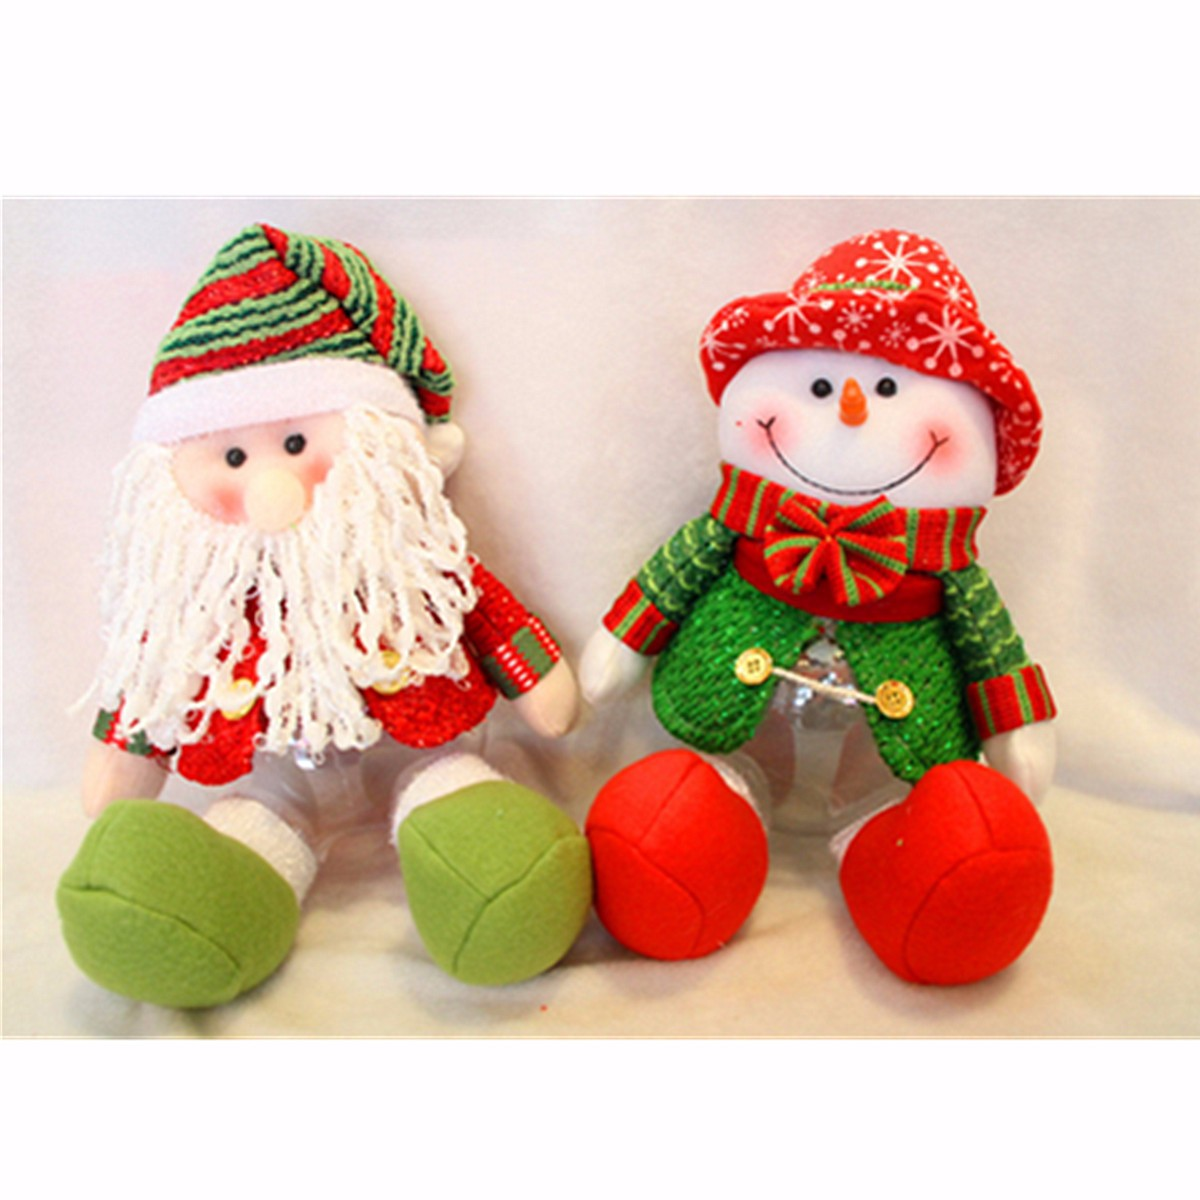 Lovely Snowman Santa Claus Candy Round Jar Bottle Christmas Kid Toy Doll Gift Decor